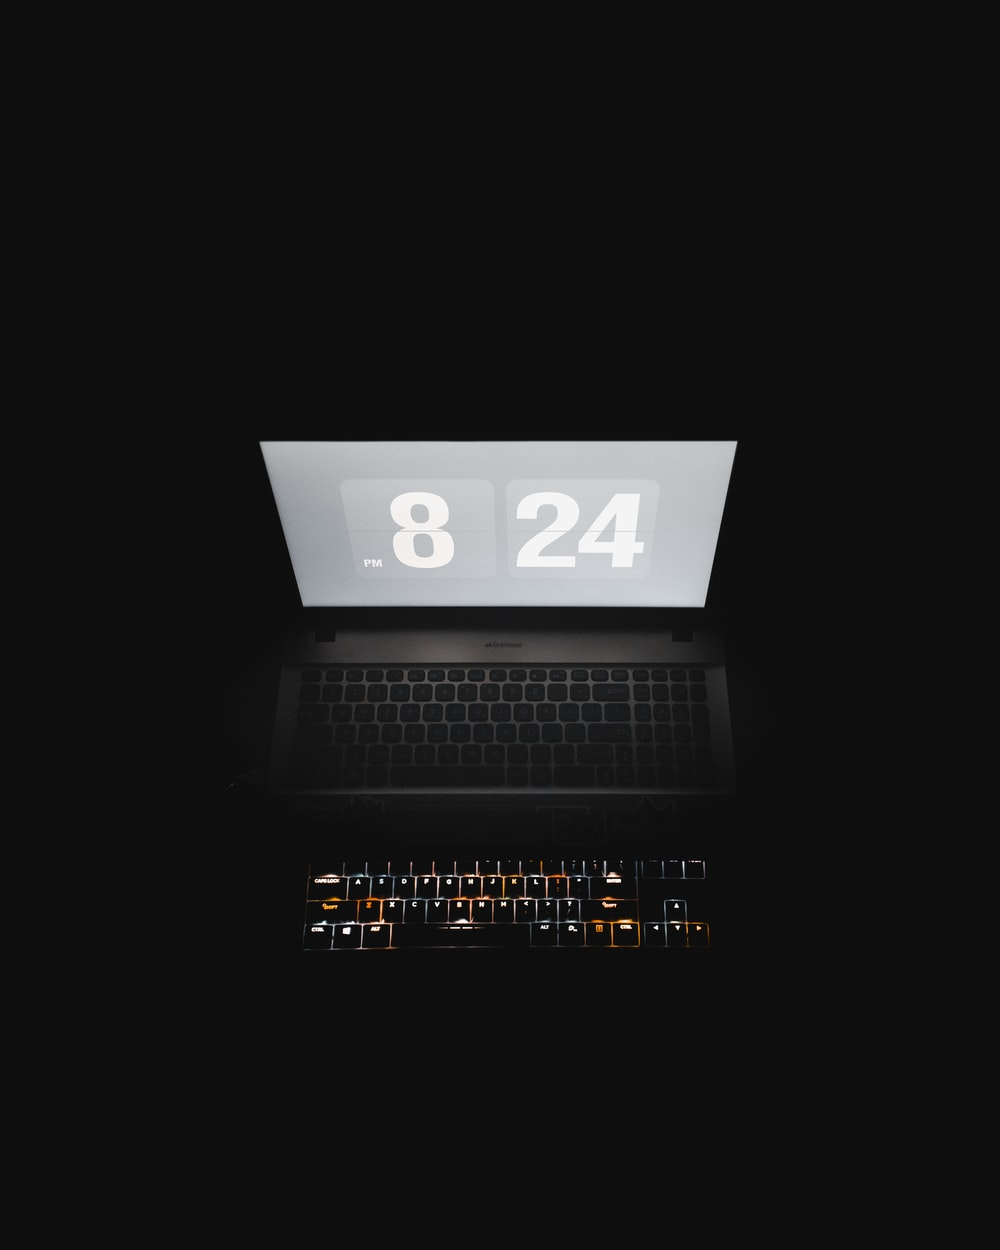 black laptop computer with number 2